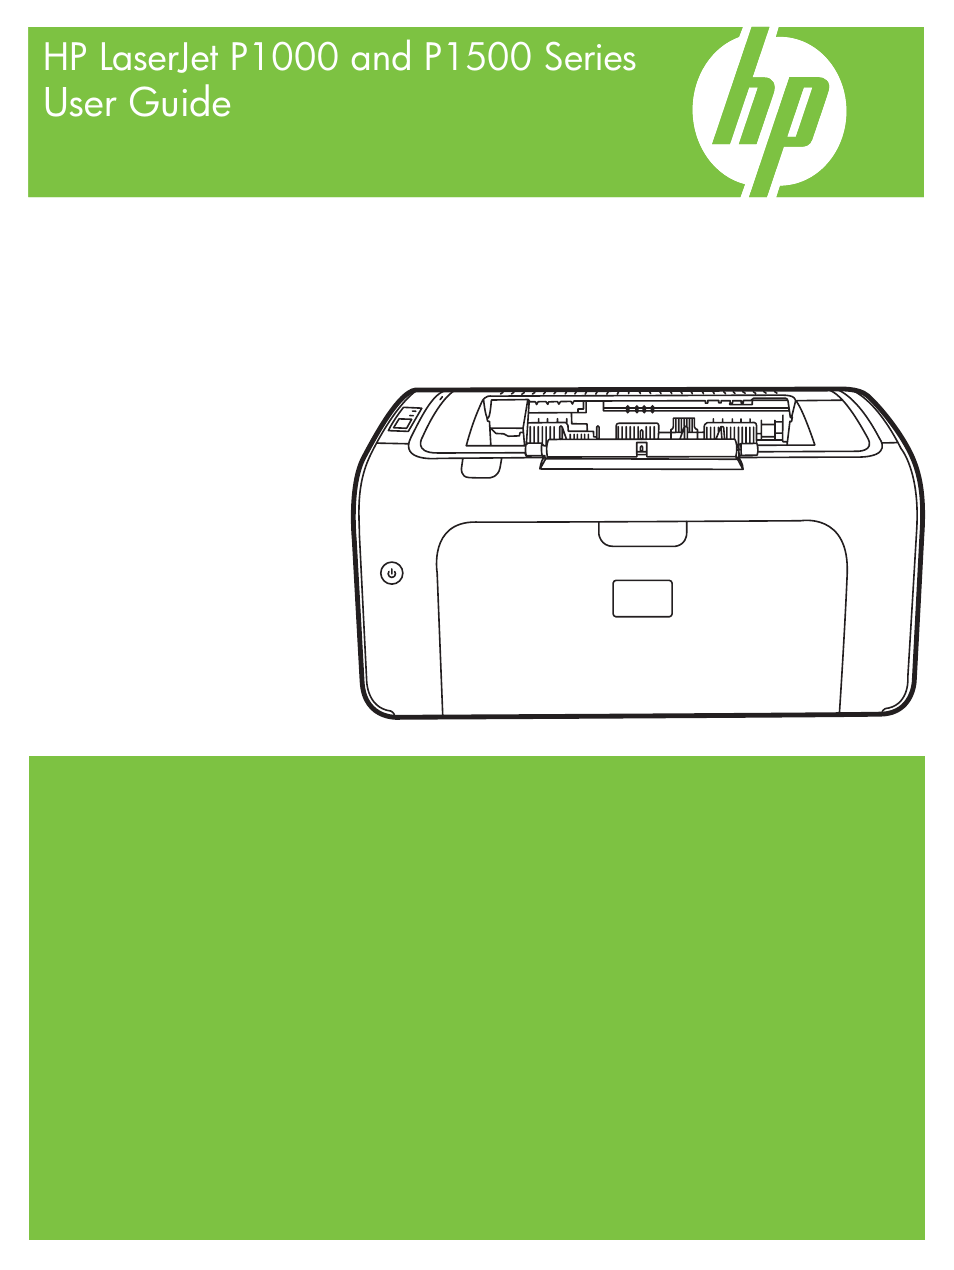 hp laserjet p1005 printer user manual 120 pages rh manualsdir com hp laserjet p1005 service manual hp laserjet p1005 user manual